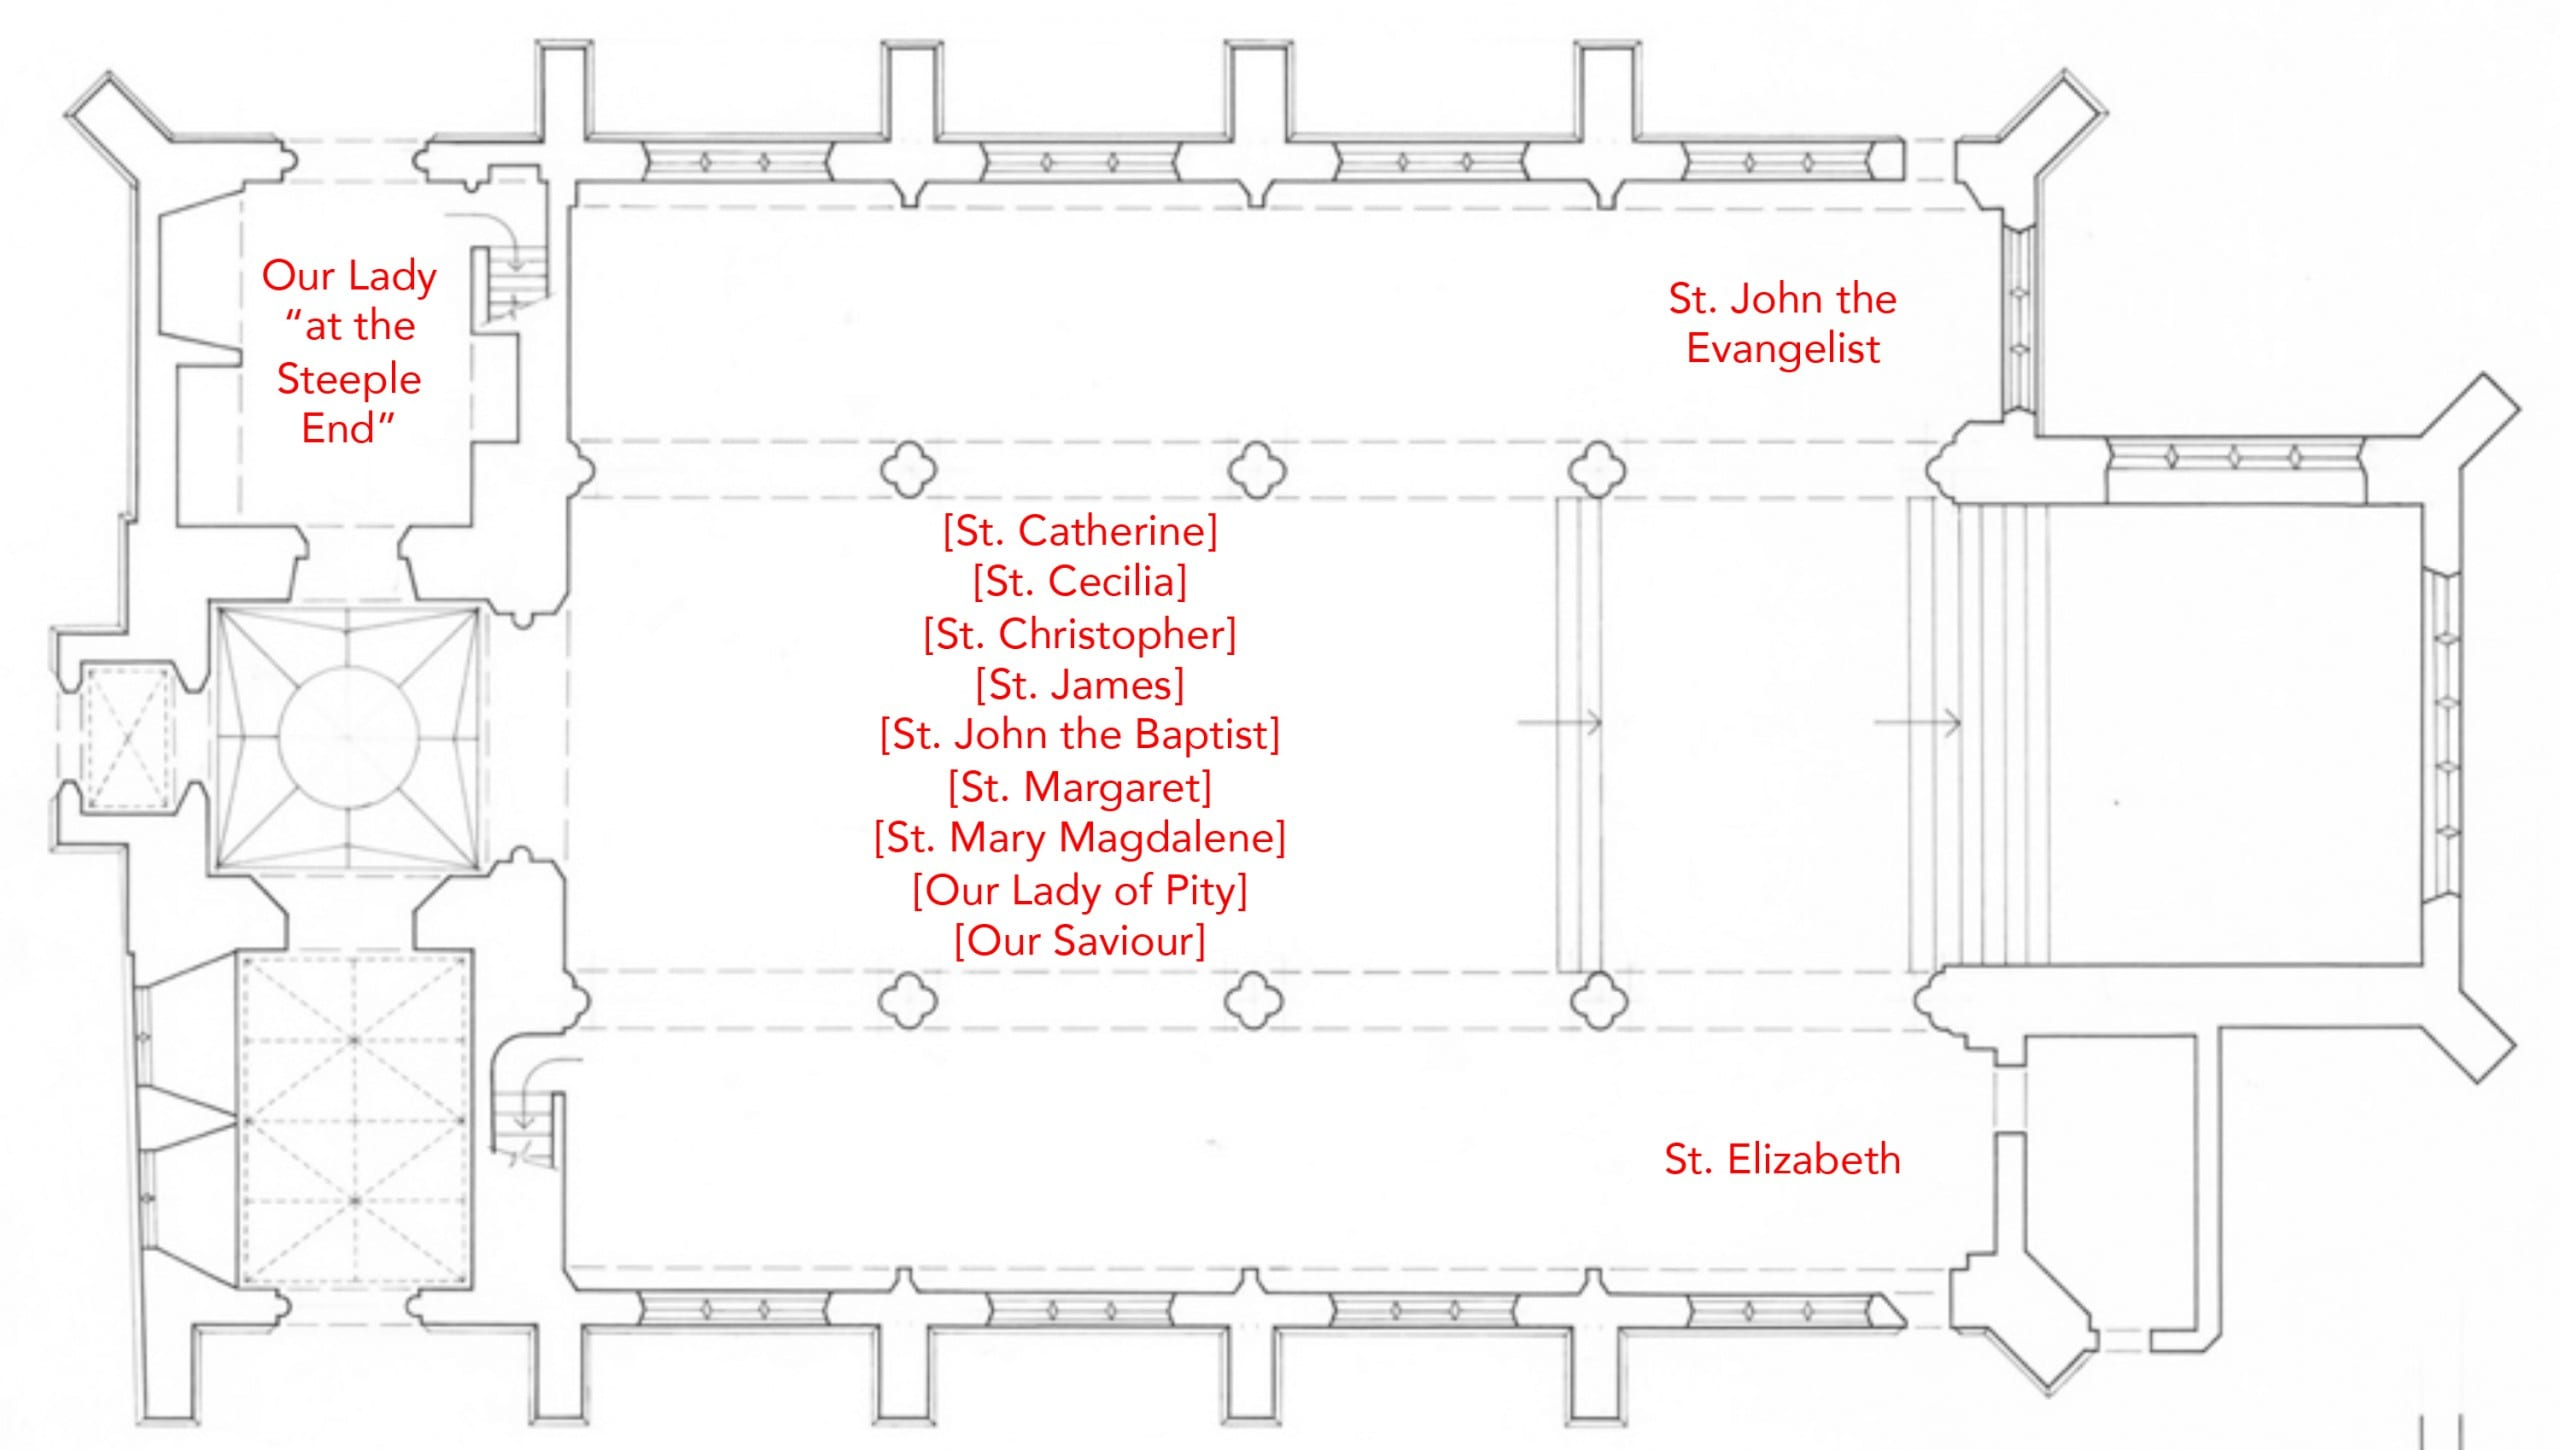 Fig. 5: Floor plan illustrating the location of devotional images in St. Gregory Pottergate, Norwich, England, before the Reformation